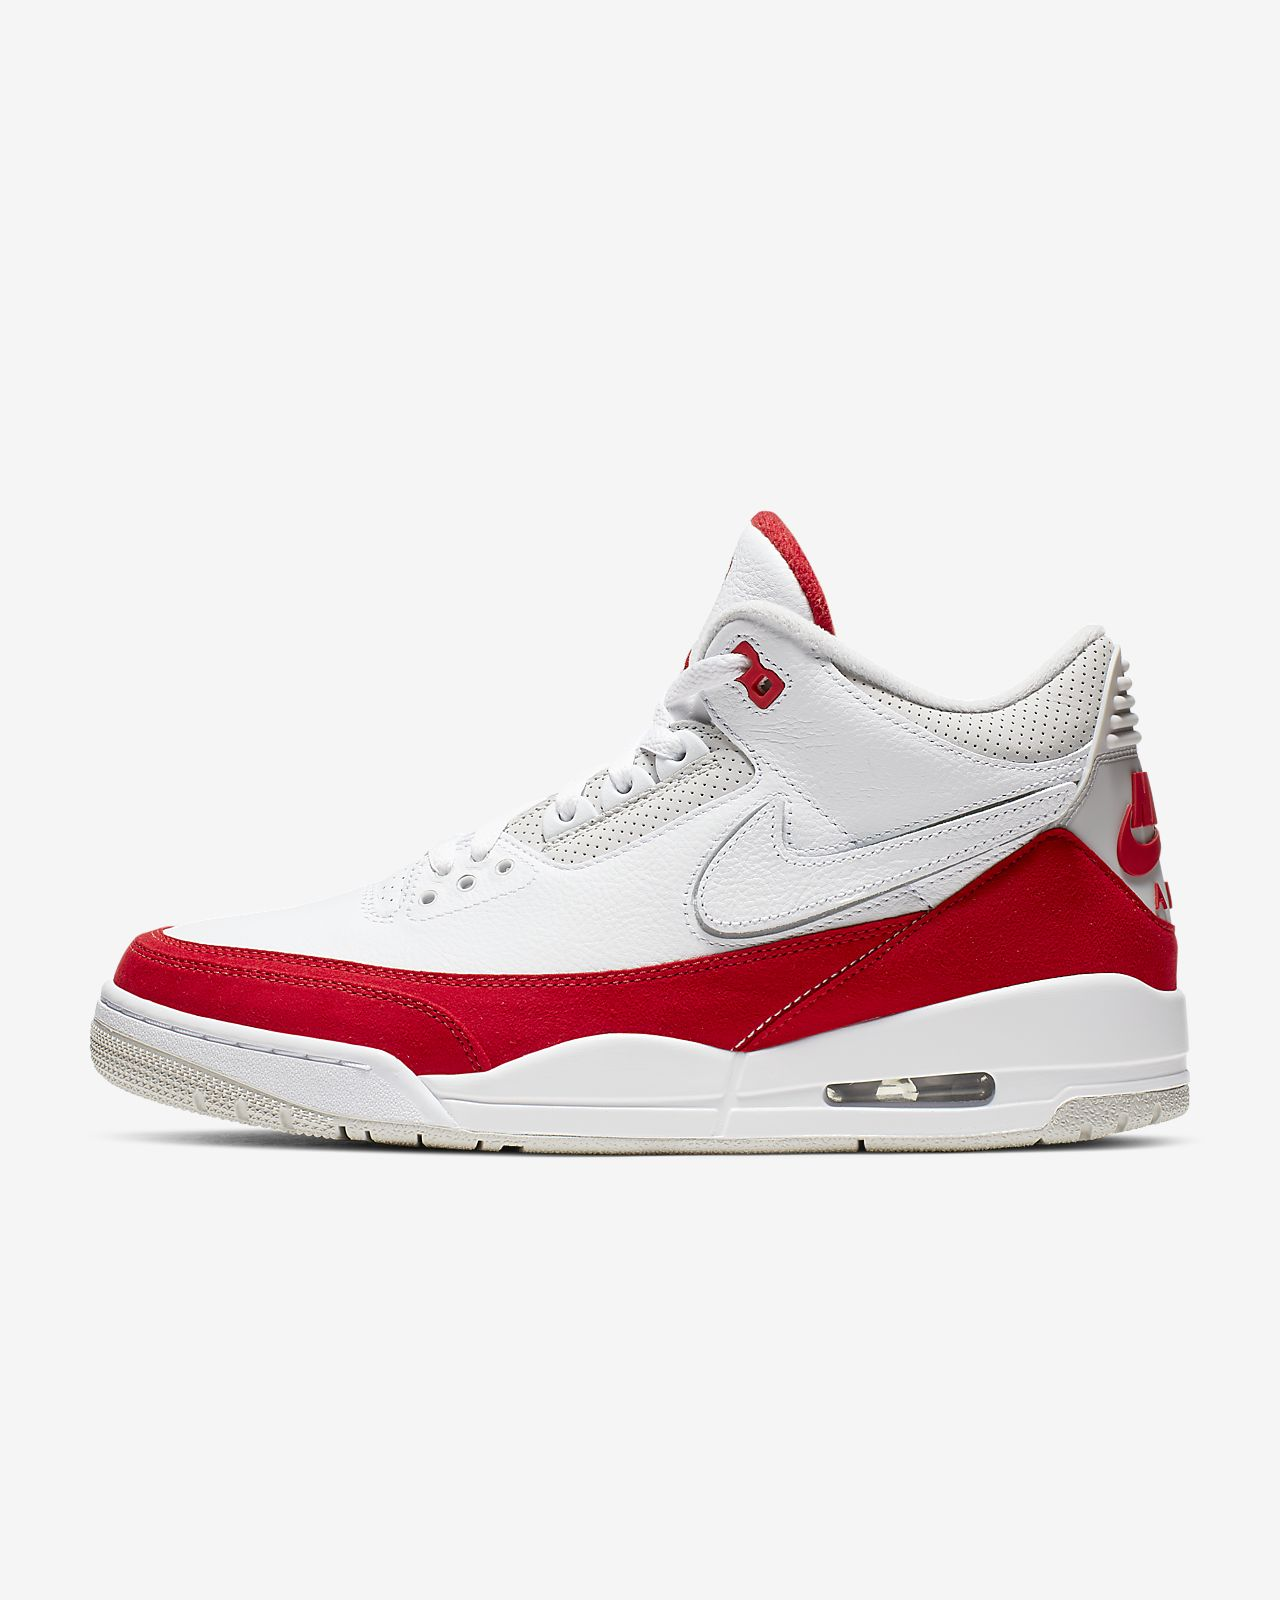 check out 4ffdc 43eed Air Jordan 3 Retro TH SP Men's Shoe